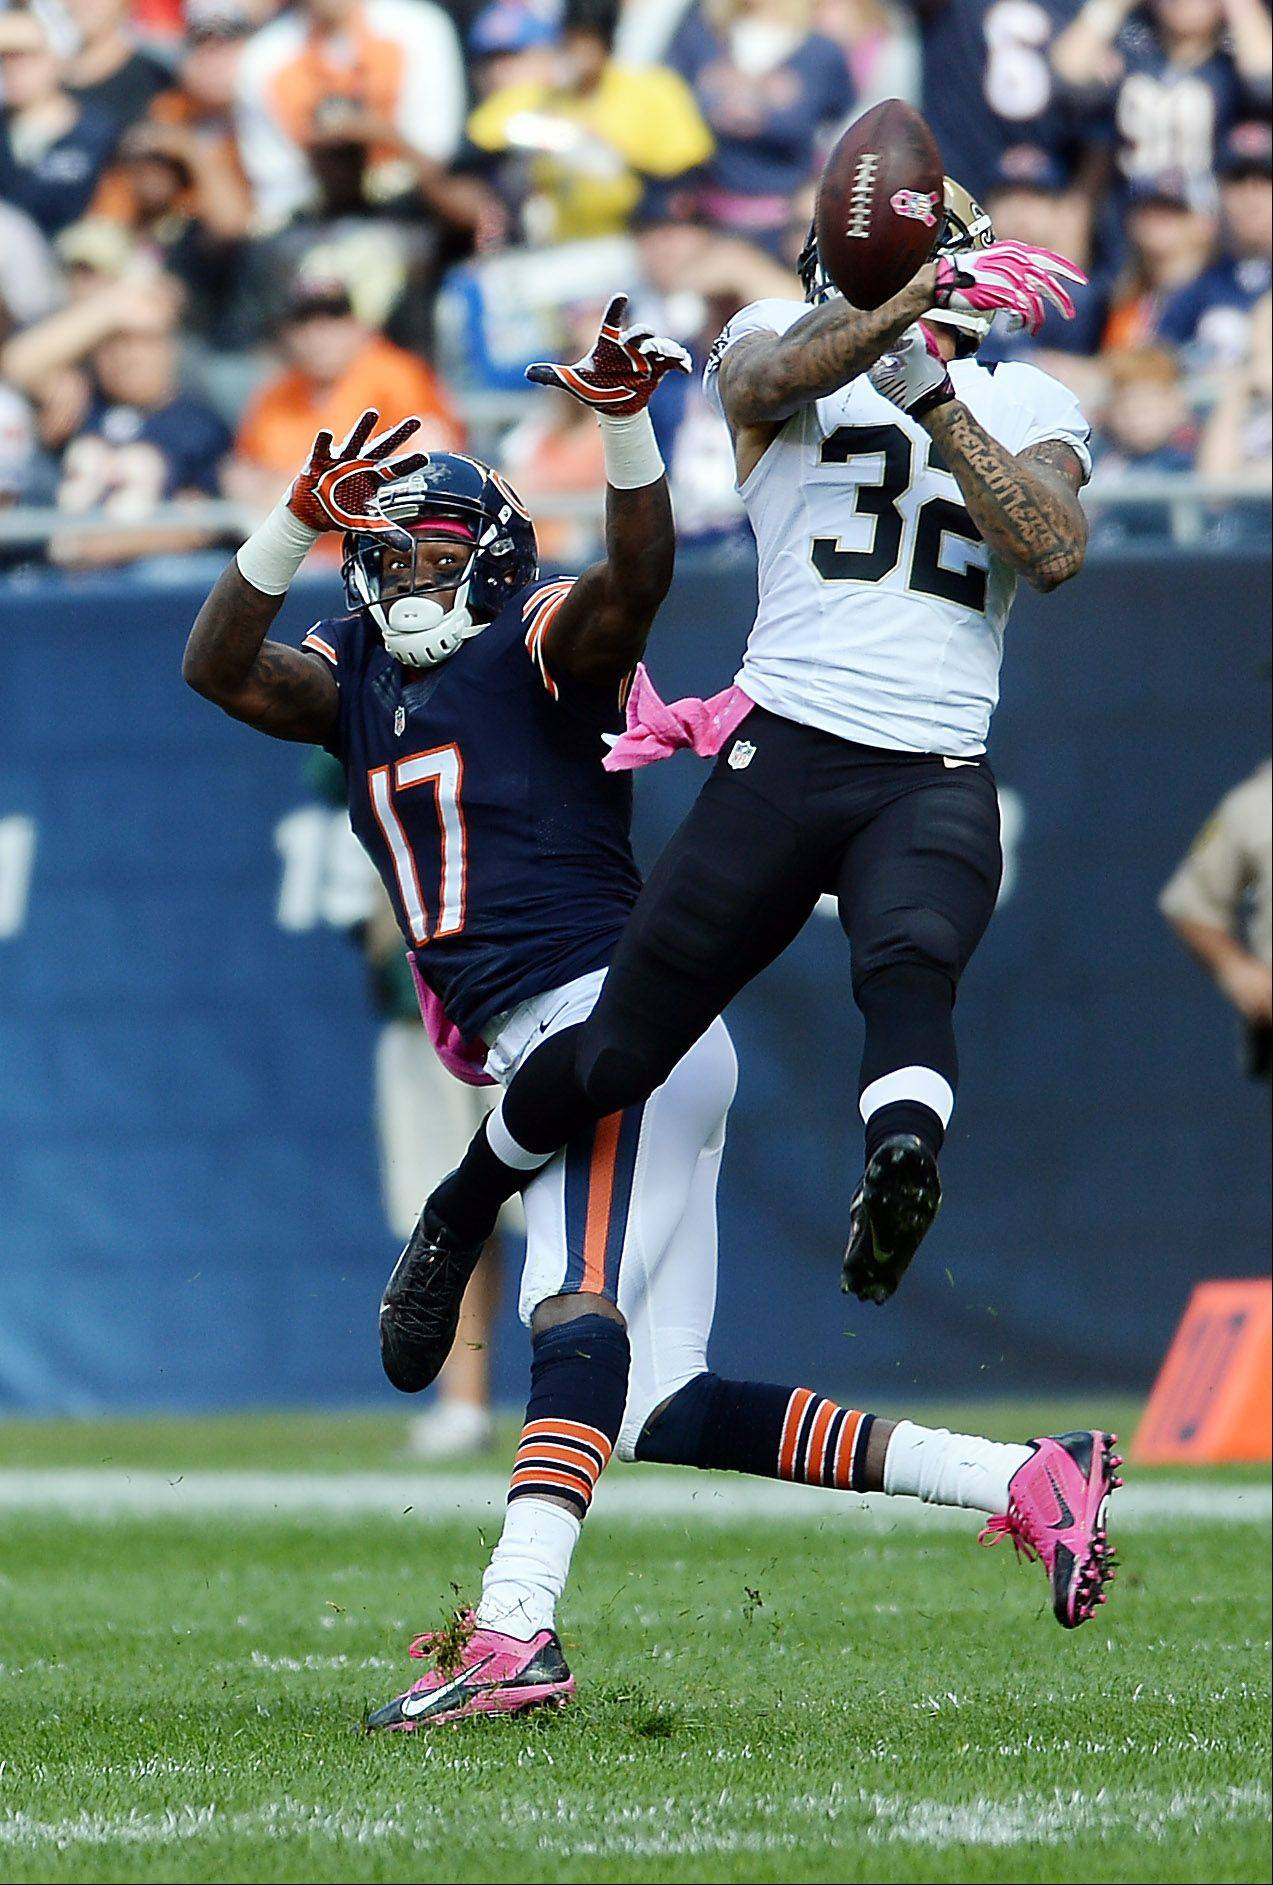 Bears receiver Alshon Jeffery has the ball knocked away by Saints Kenny Vaccaro in the first half at Soldier Field on Sunday.